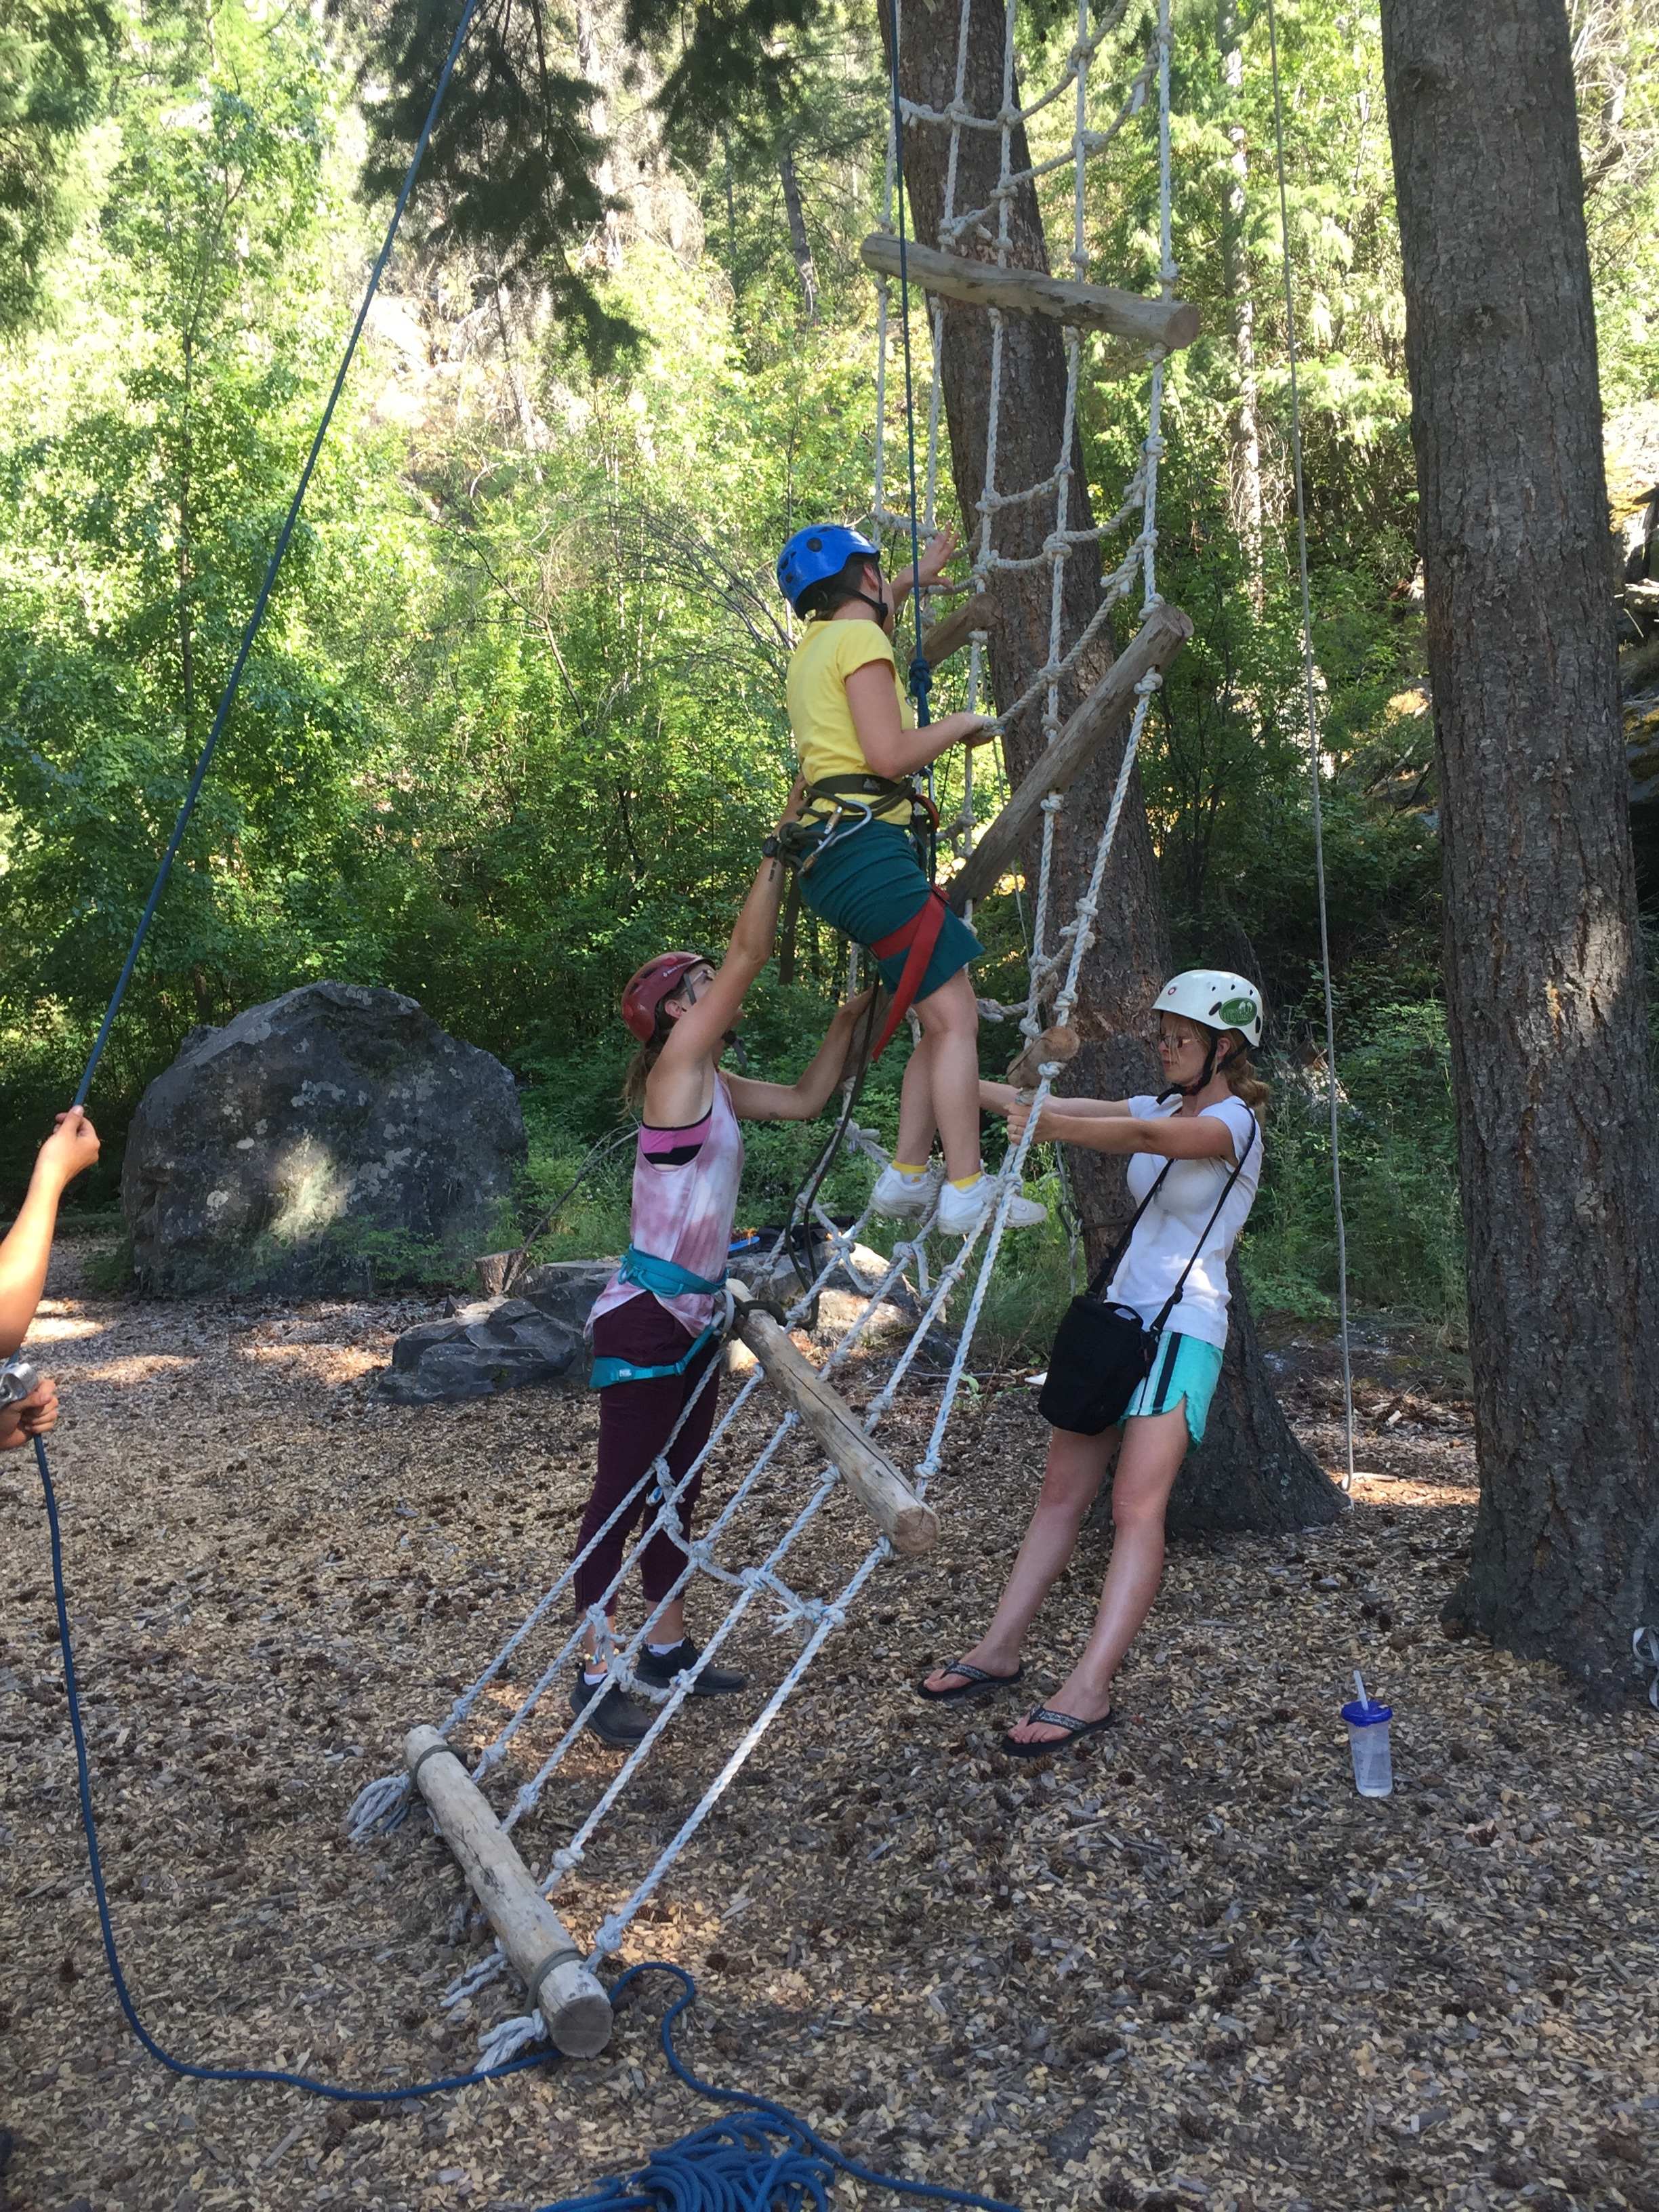 One of our girls, who is diagnosed with Cerebral Palsy, waited very patiently for her chance to try the ropes course! She was the last camper to climb and even though it was almost time for dinner patiently and sometimes tediously pushed herself through the whole course. We were so proud of her!